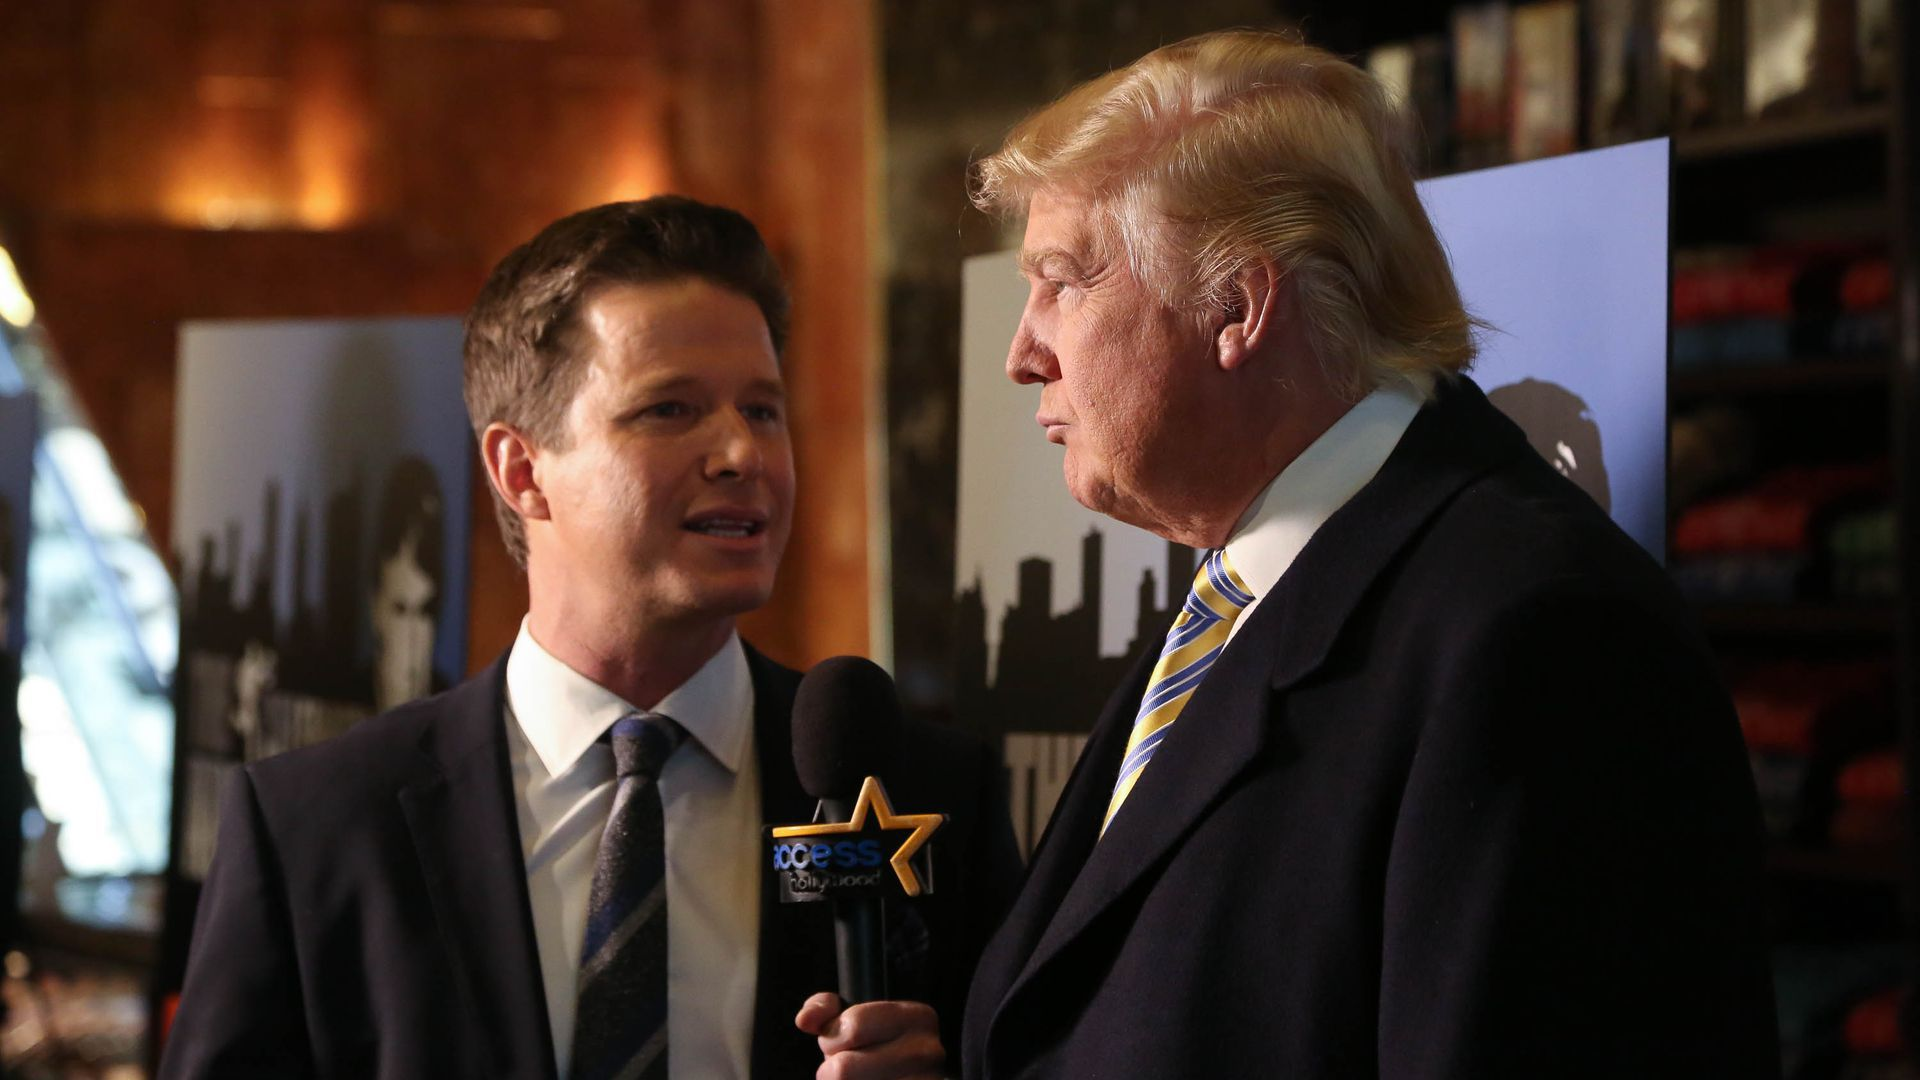 Billy Bush interviewing Trump